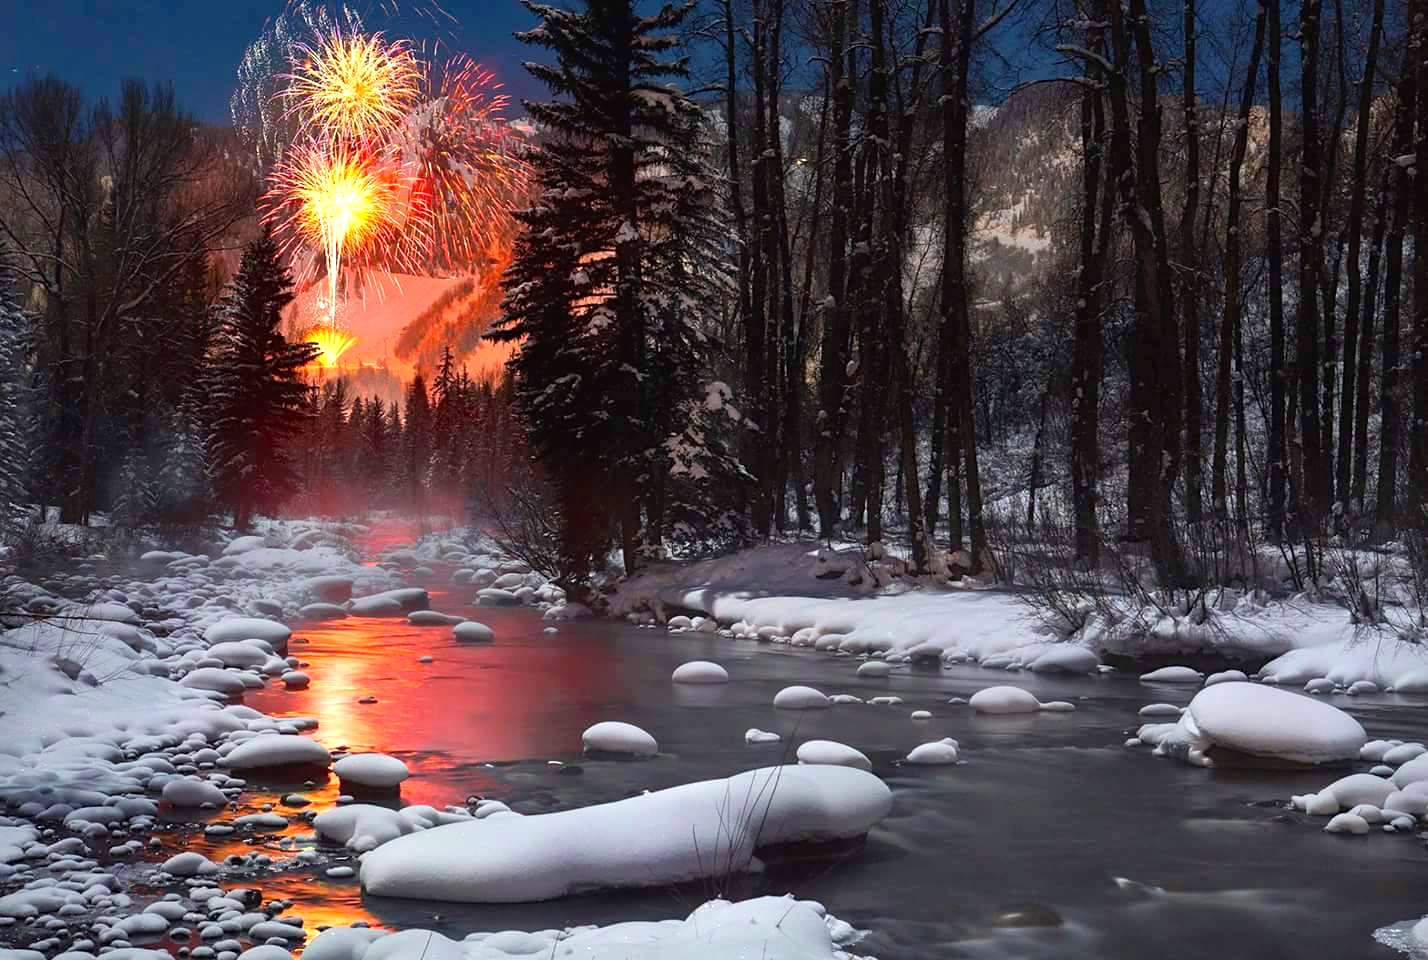 Fireworks in Aspen as seen from the Roaring Fork River, New Years Eve, 2014. Photograph by Jeremy Swanson